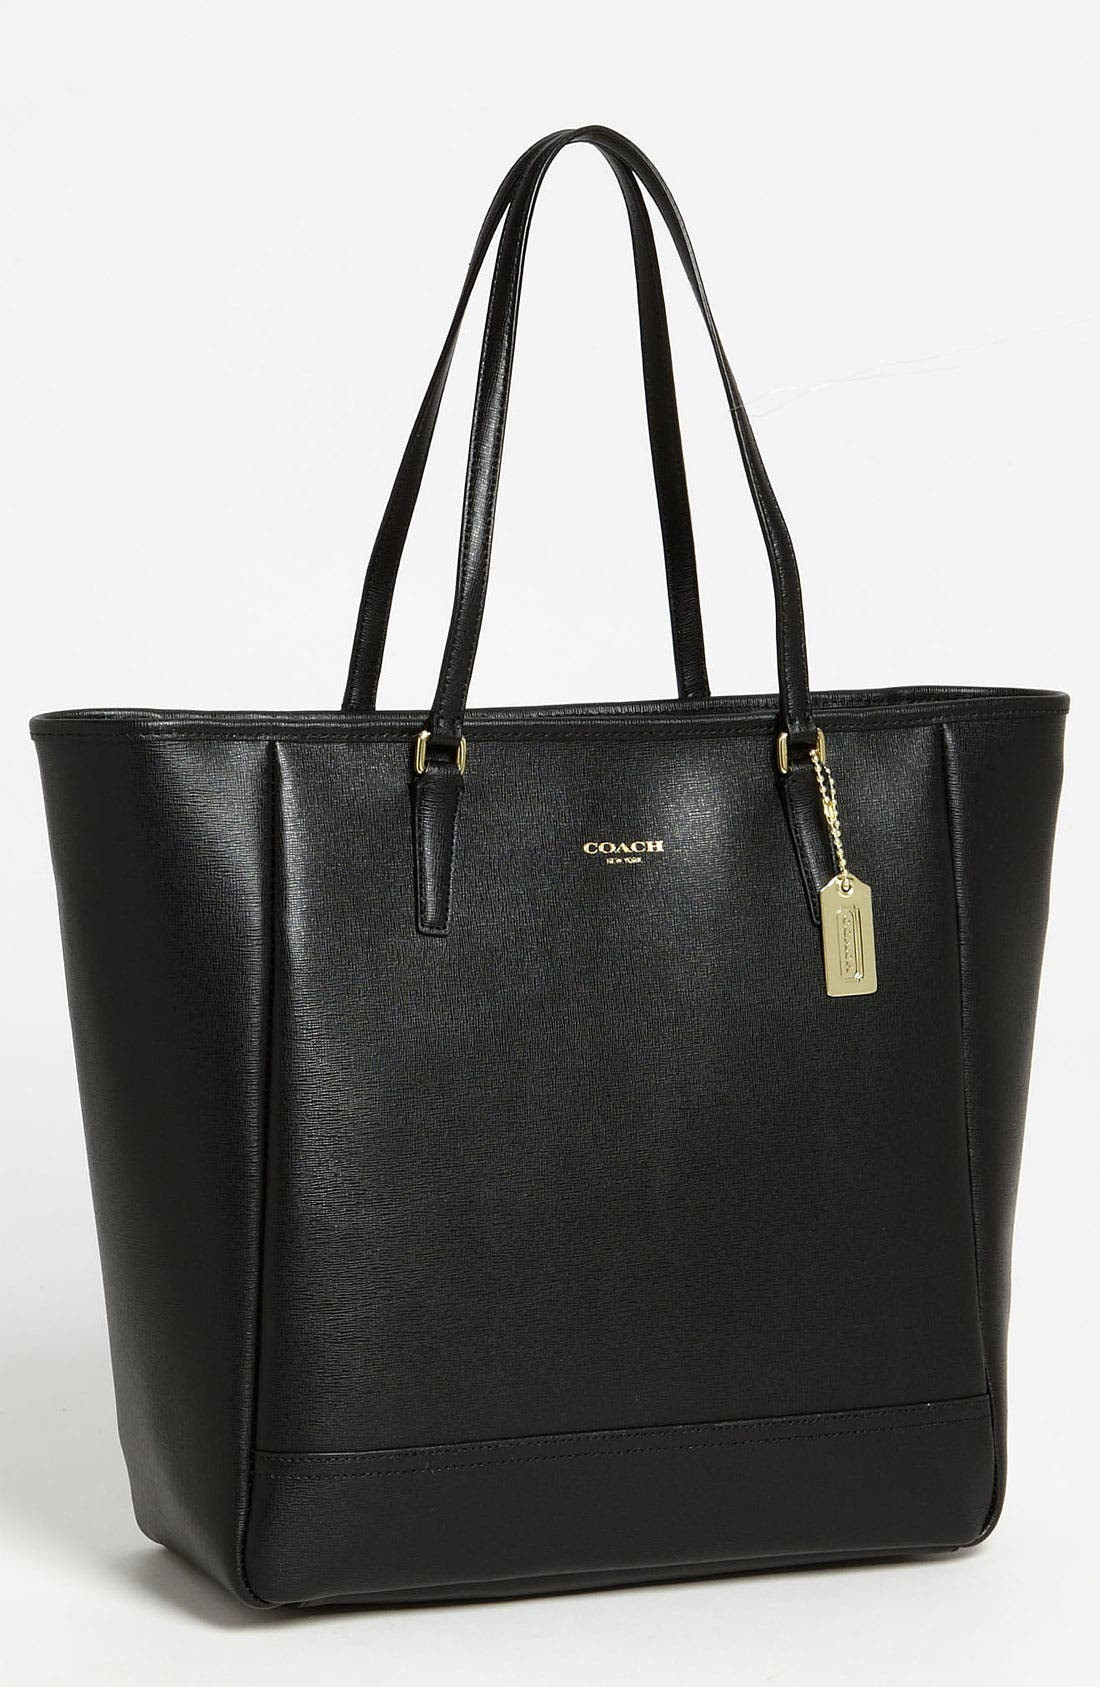 Alternate Image 1 Selected - COACH 'Medium' Leather Tote